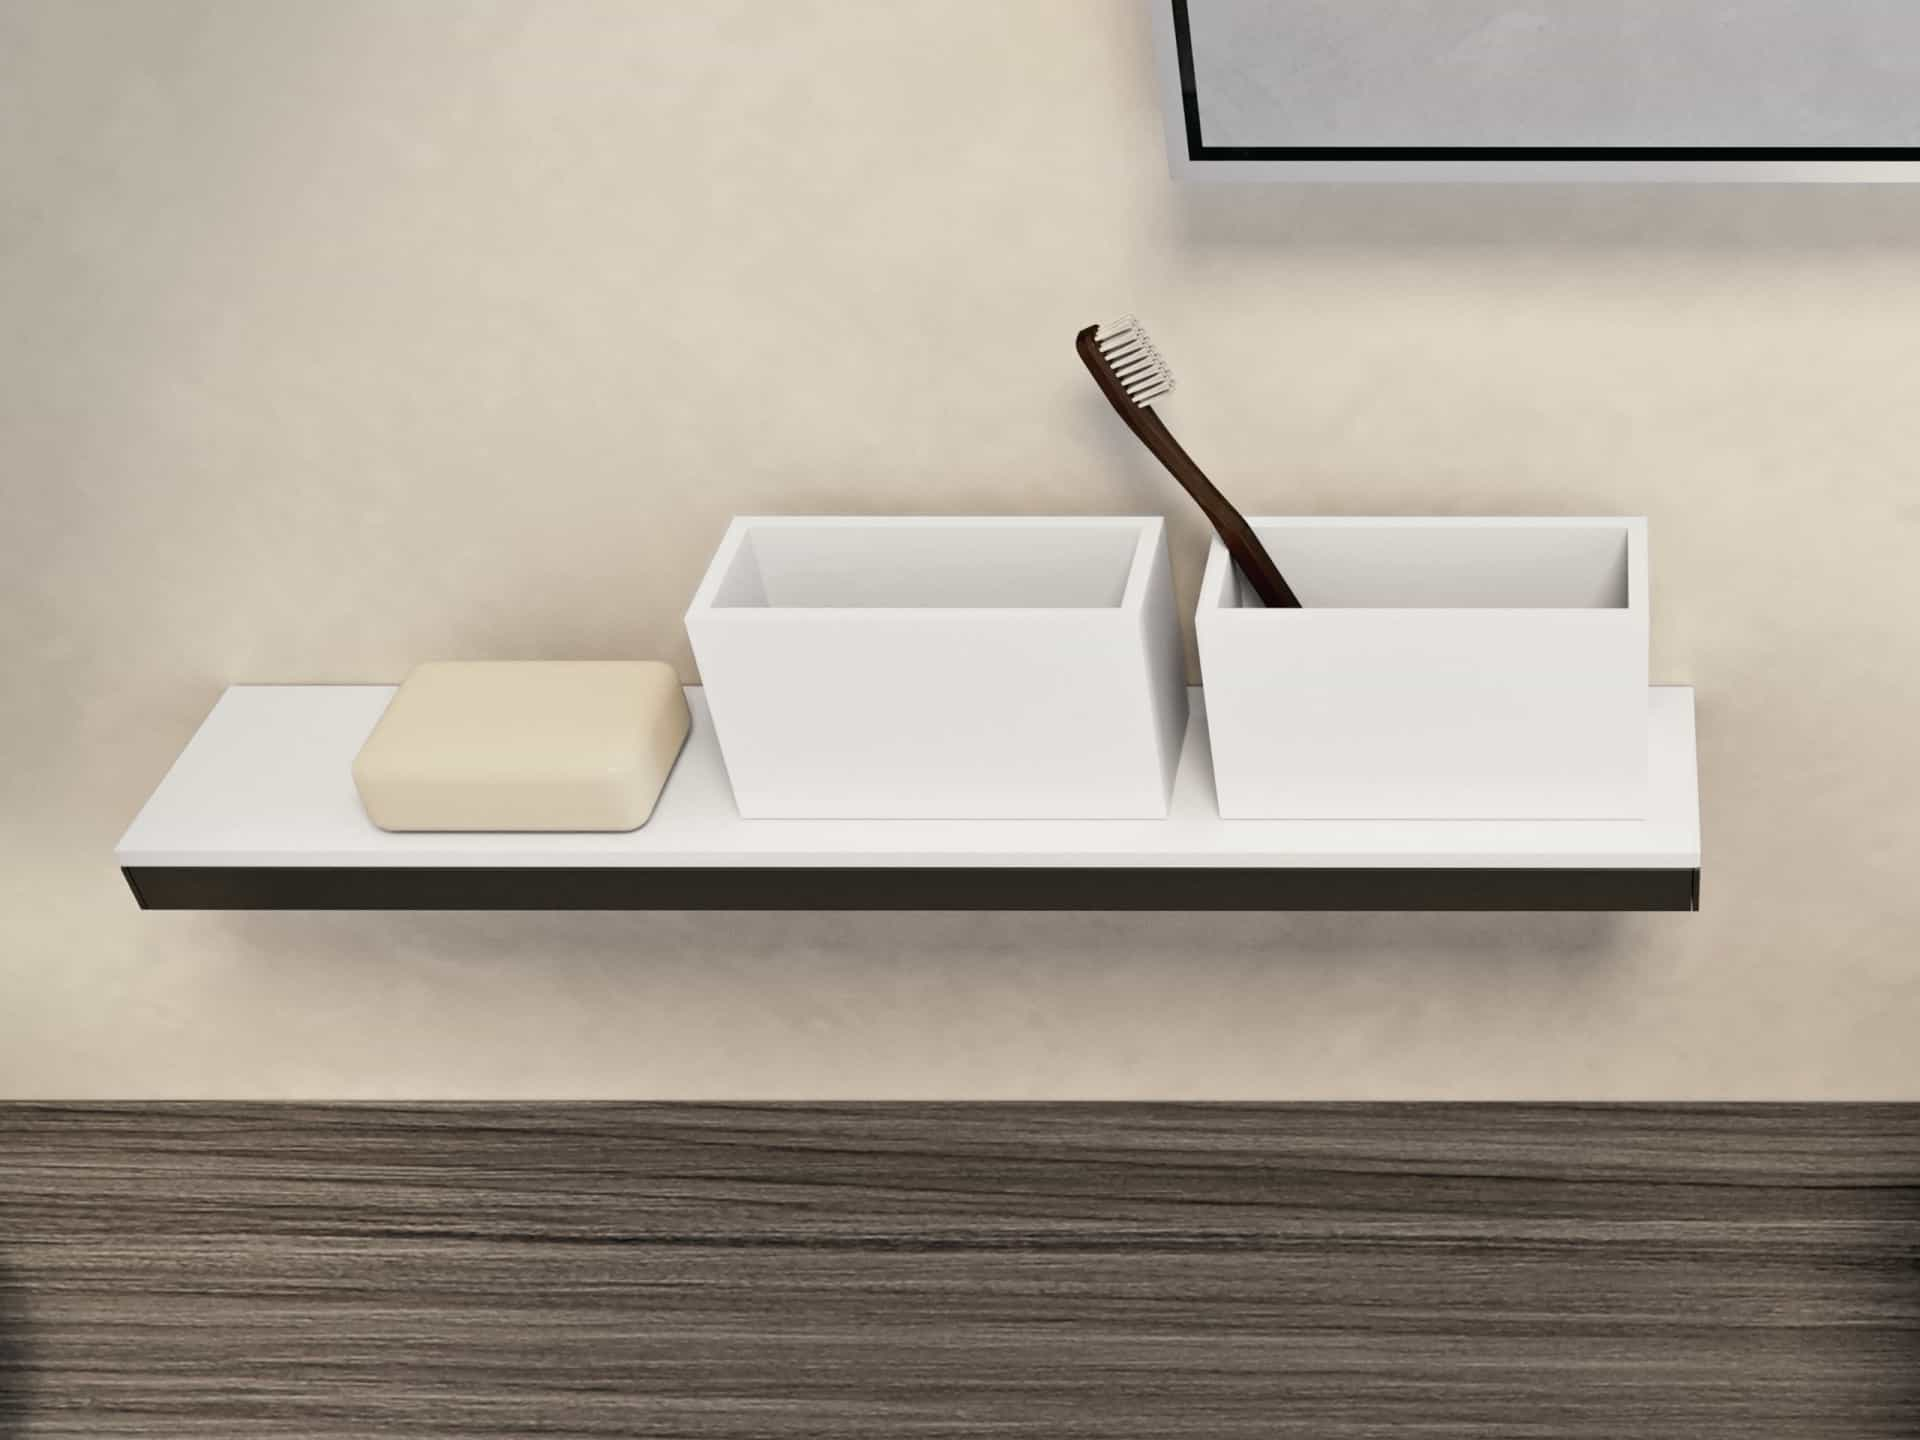 Modern Toothbrush Holder Shelf (Image 5 of 6)